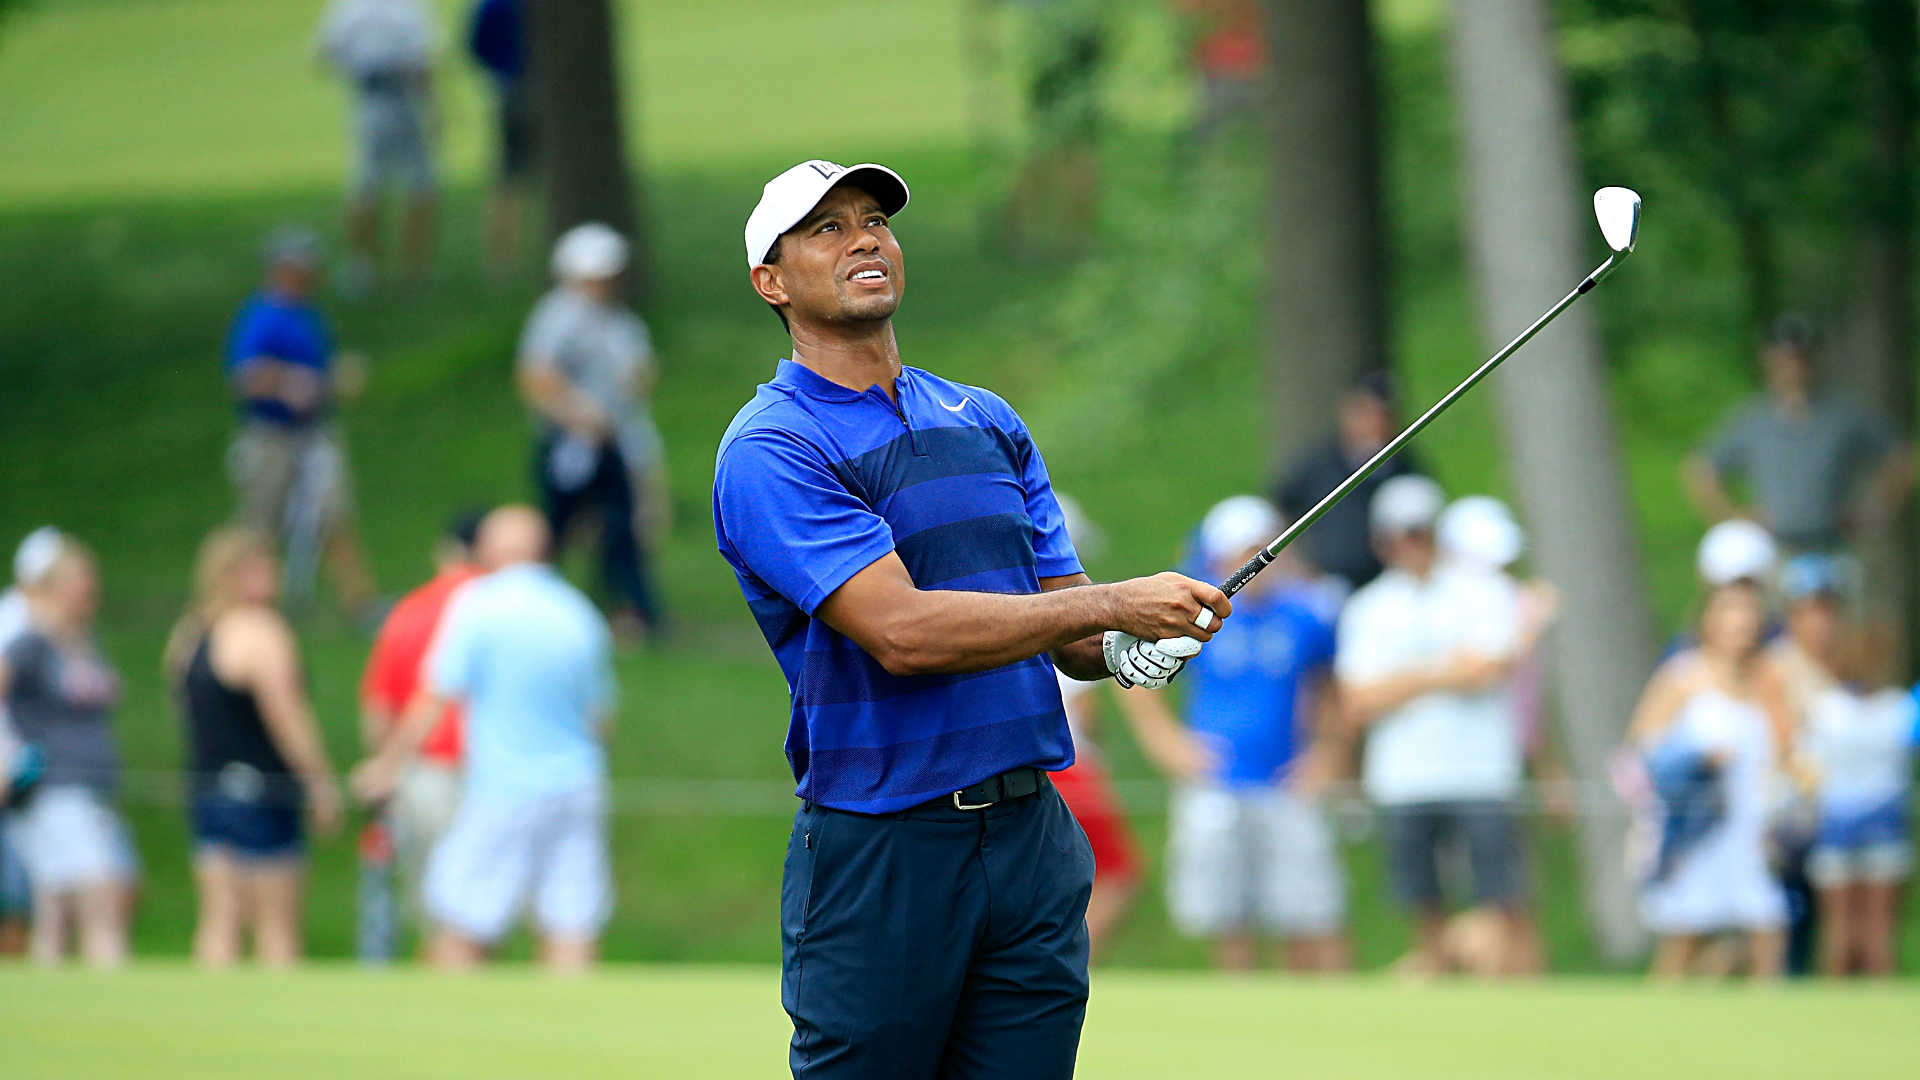 tiger woods score  round 2 updates  leaderboard from